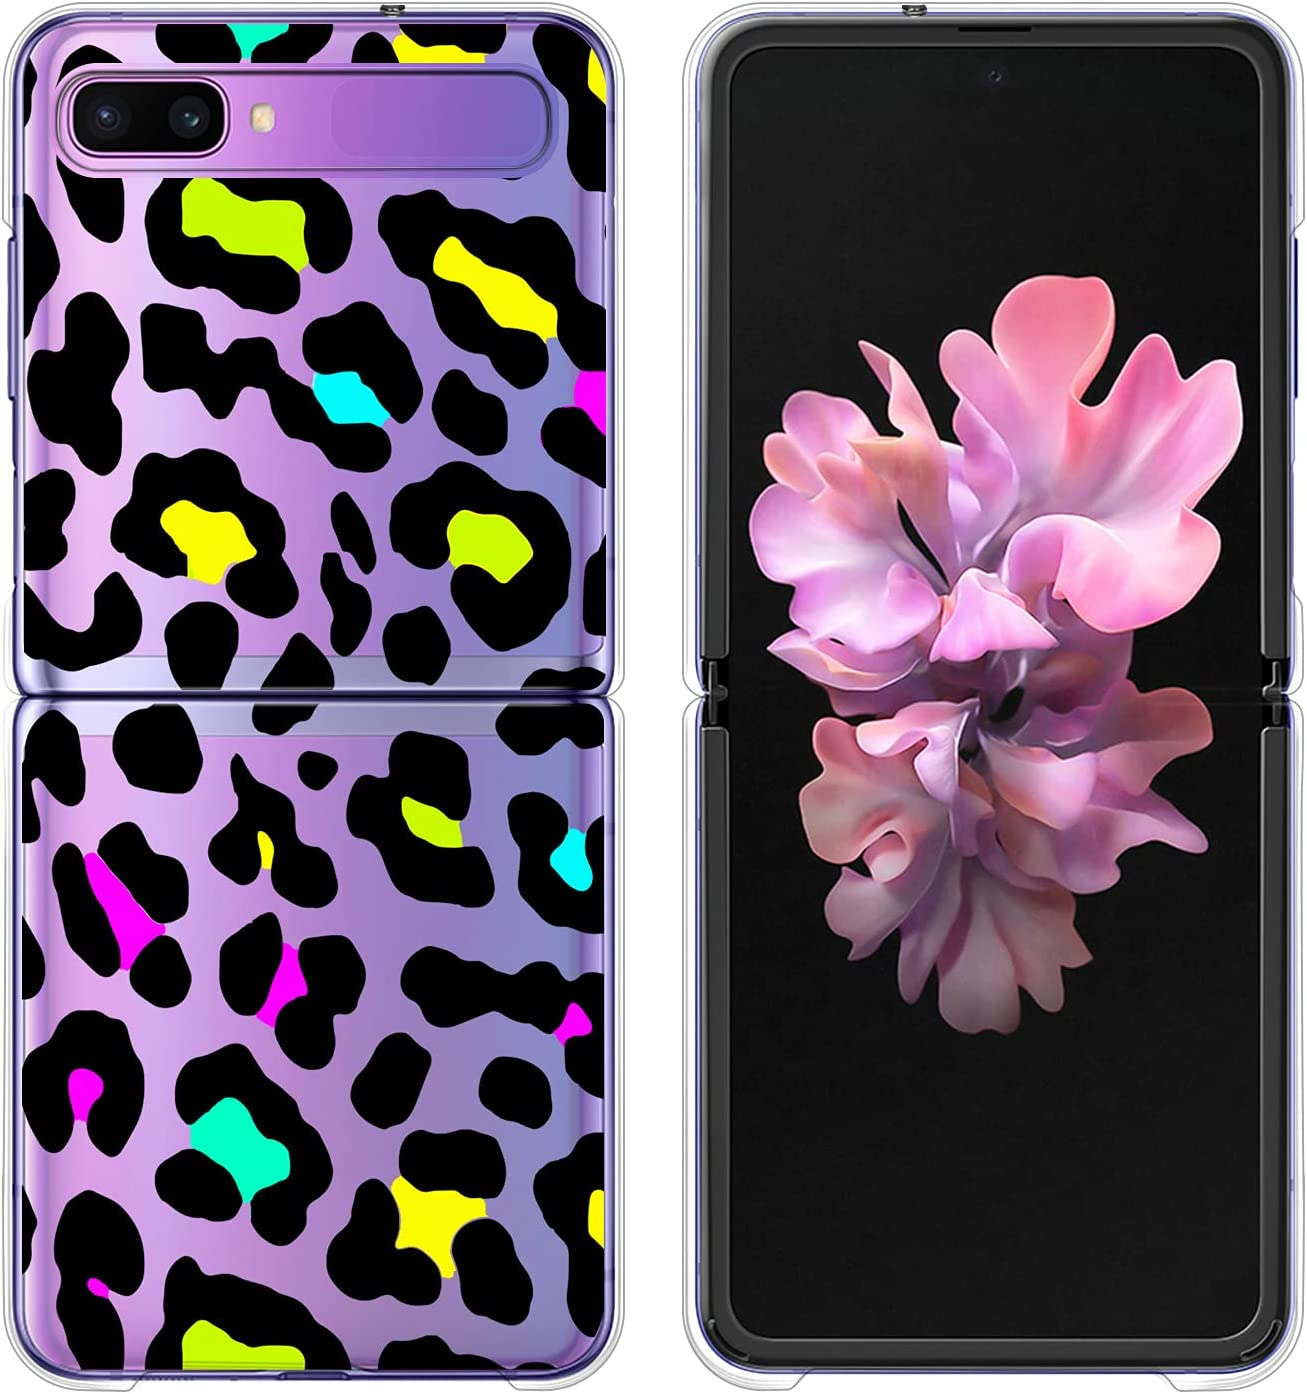 LSL Case for Samsung Galaxy Z Flip 5G Case Colorful Leopard Clear Cute Design Pattern Hard PC Shockproof Protection Full Body Protection Wireless Charging Slim Phone Cover for Galaxy Z Flip 5G